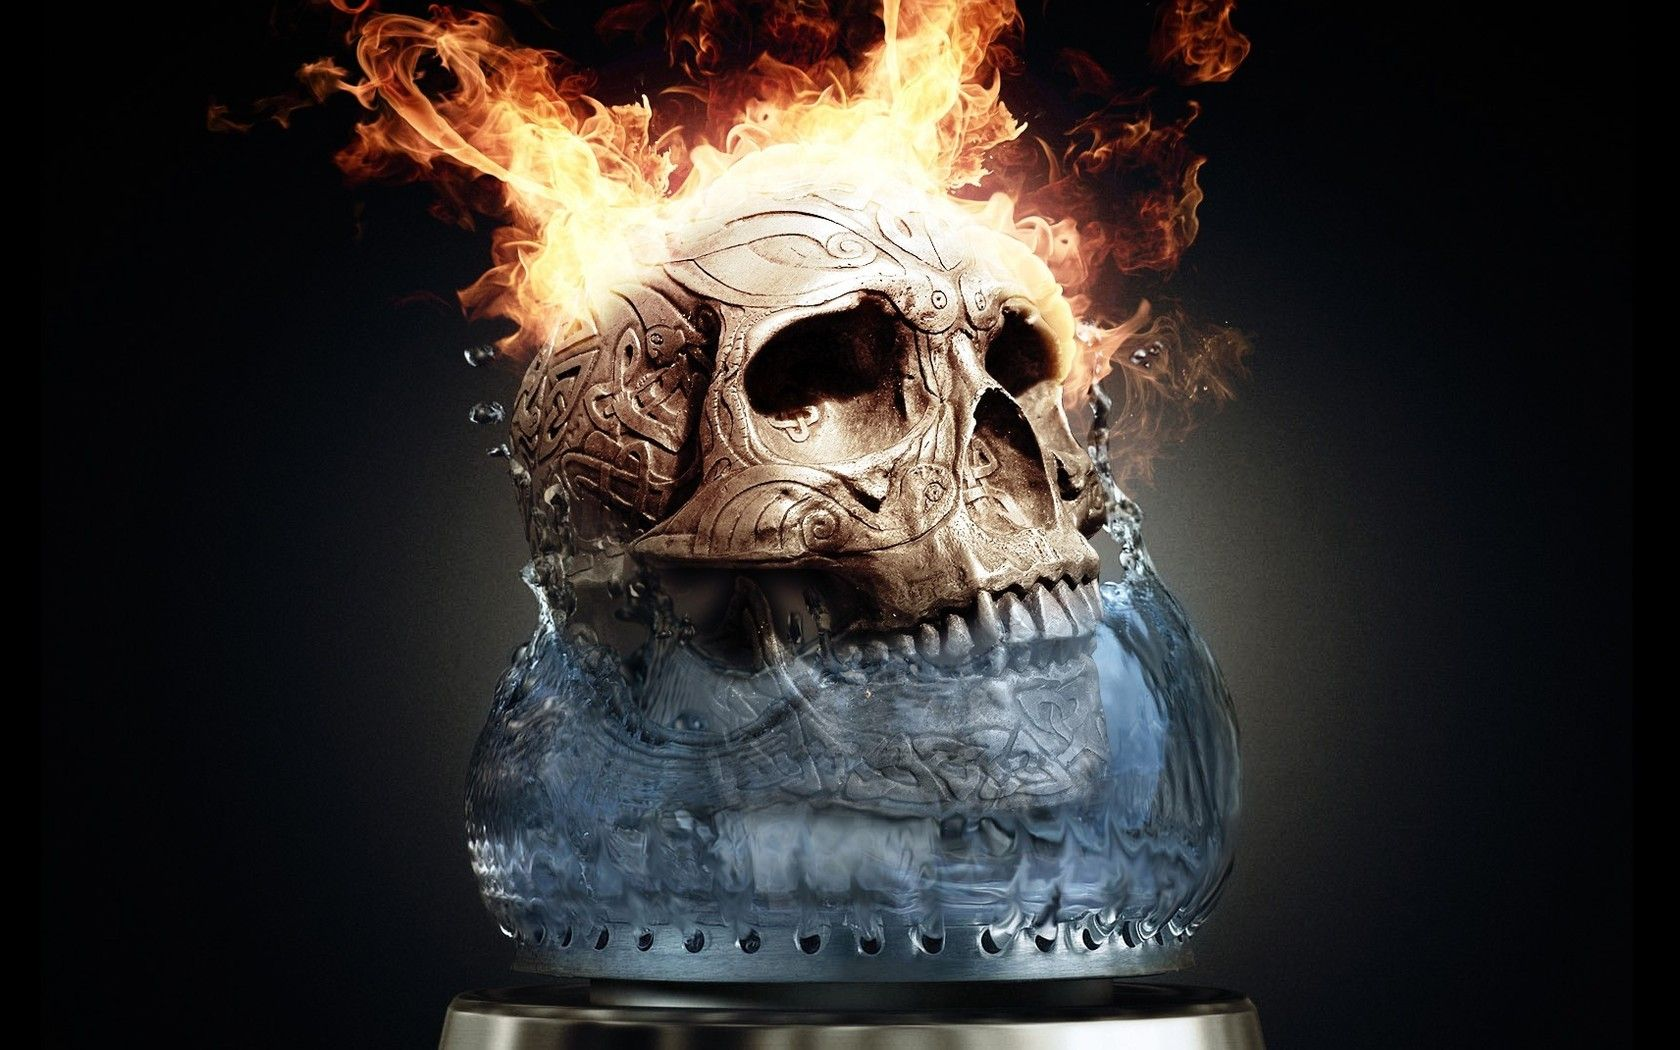 dark - skull - fire - flames - dark - artistic wallpaper | cool